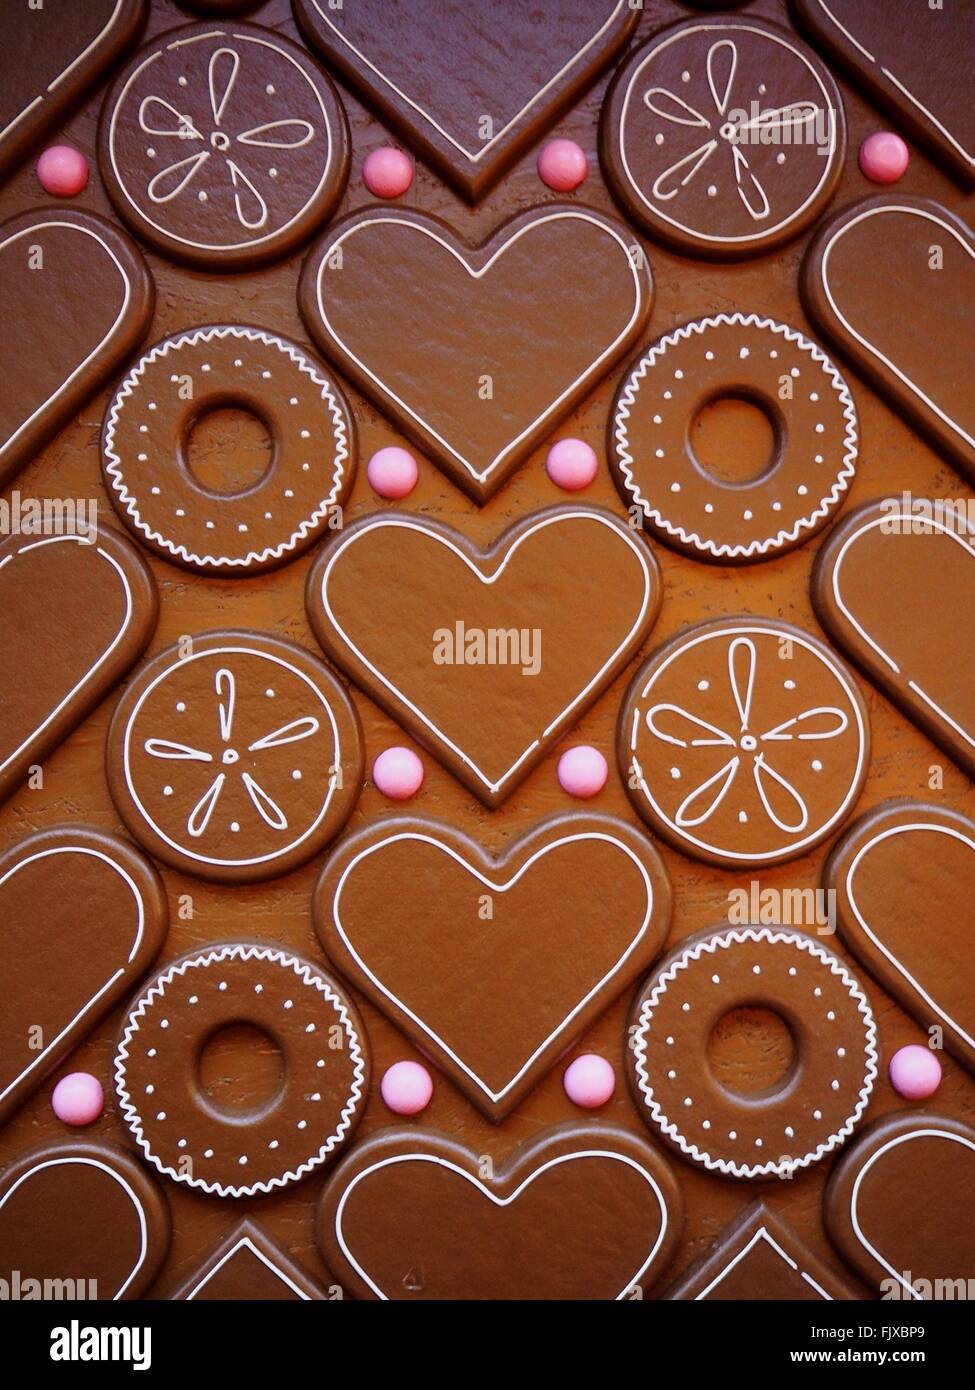 Full Frame Shot Of Heart And Circle Shaped Chocolate - Stock Image